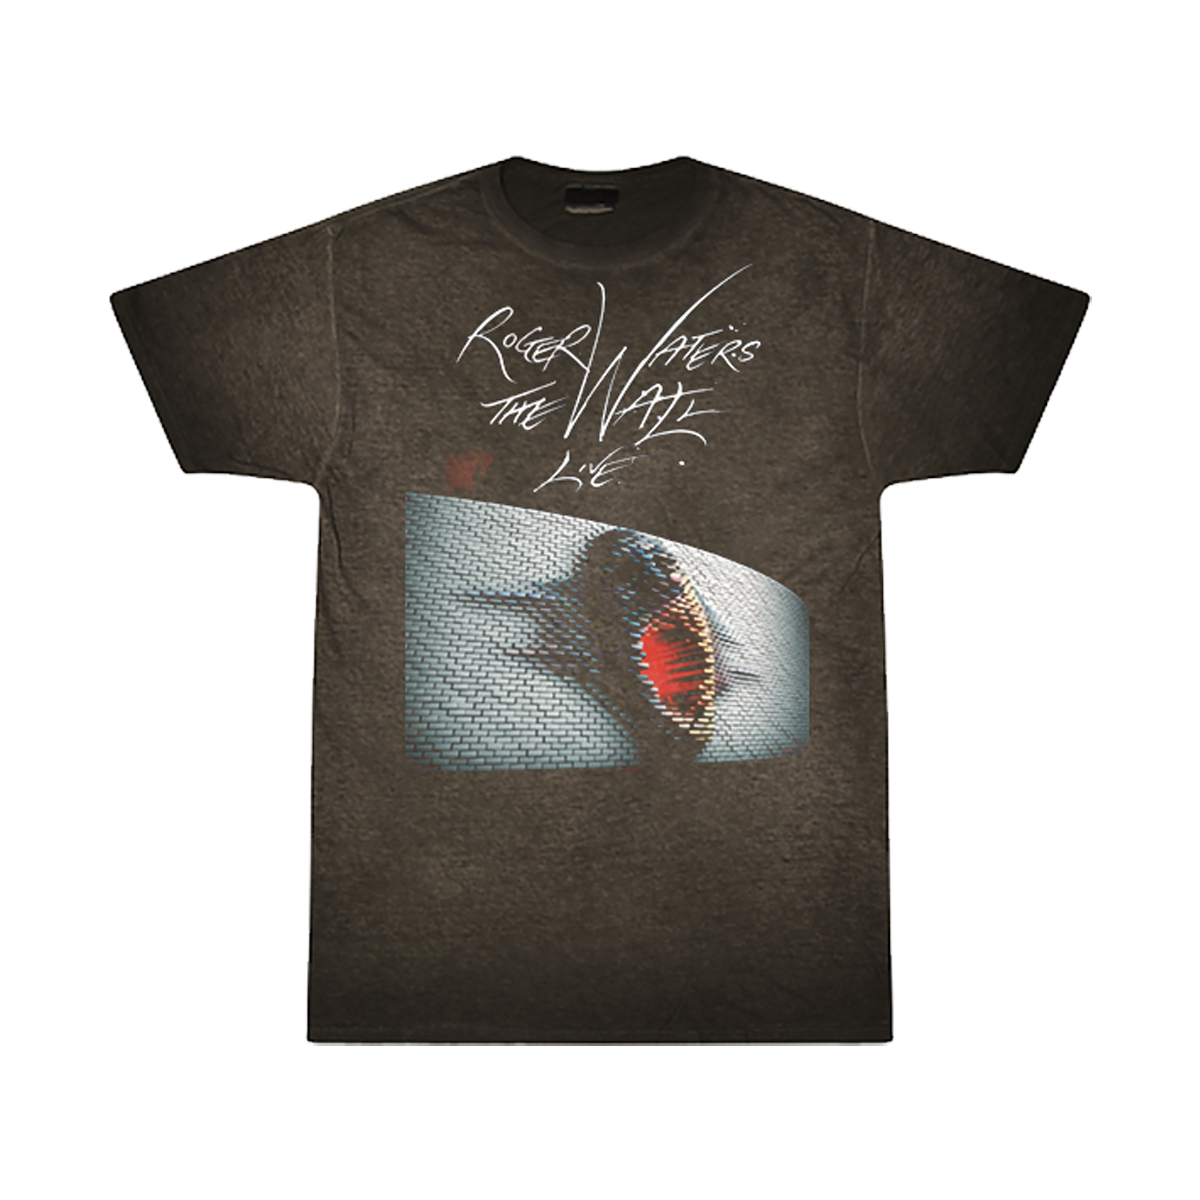 Roger Waters' The Wall Live Tee